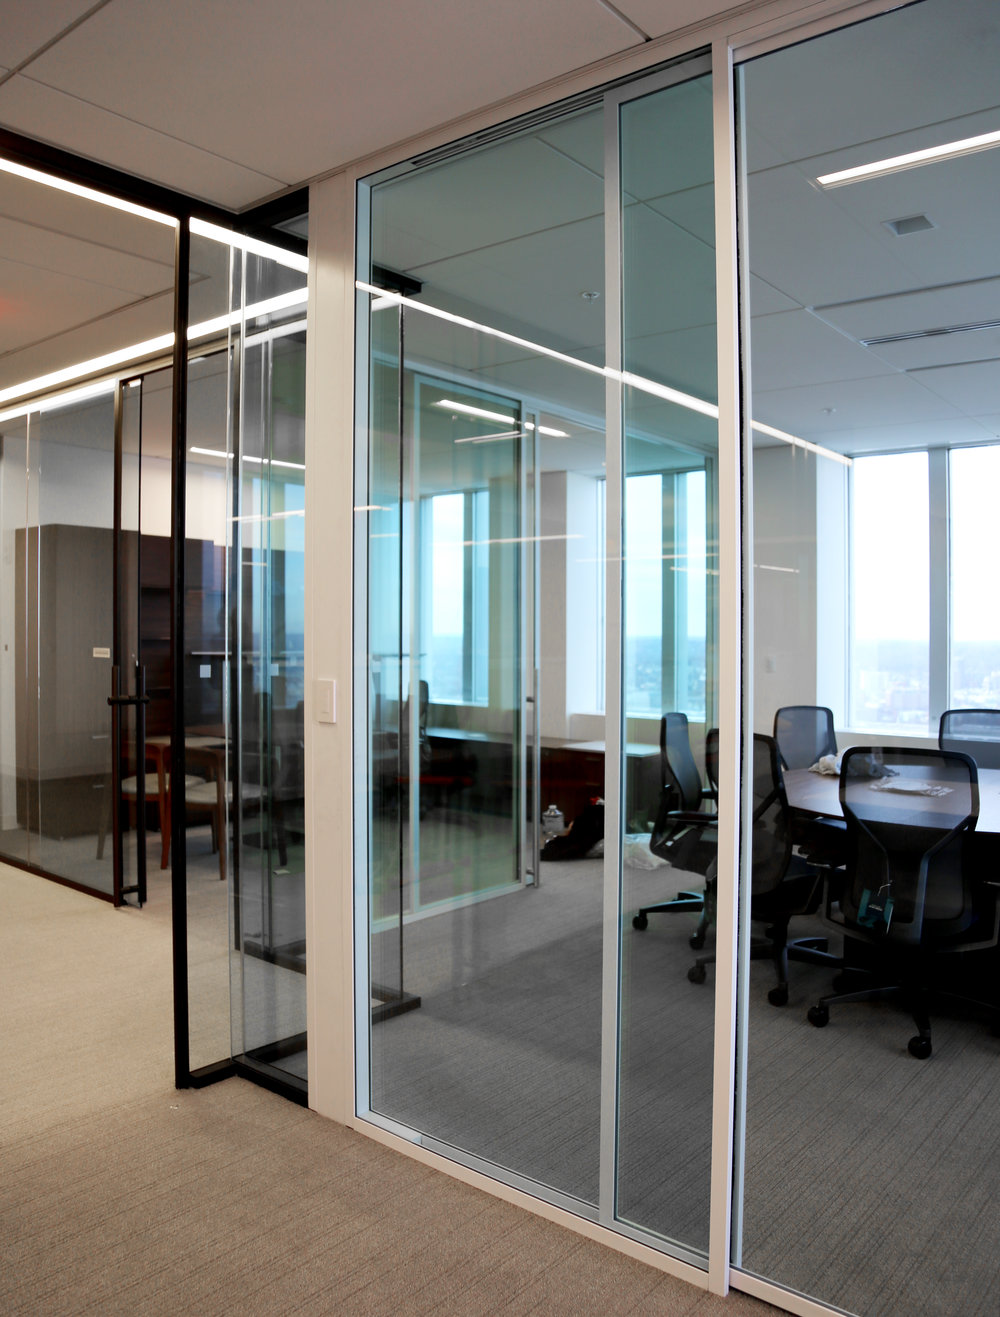 Modernus Demountable Dual Pane Glass System - Spaceworks AI.jpg